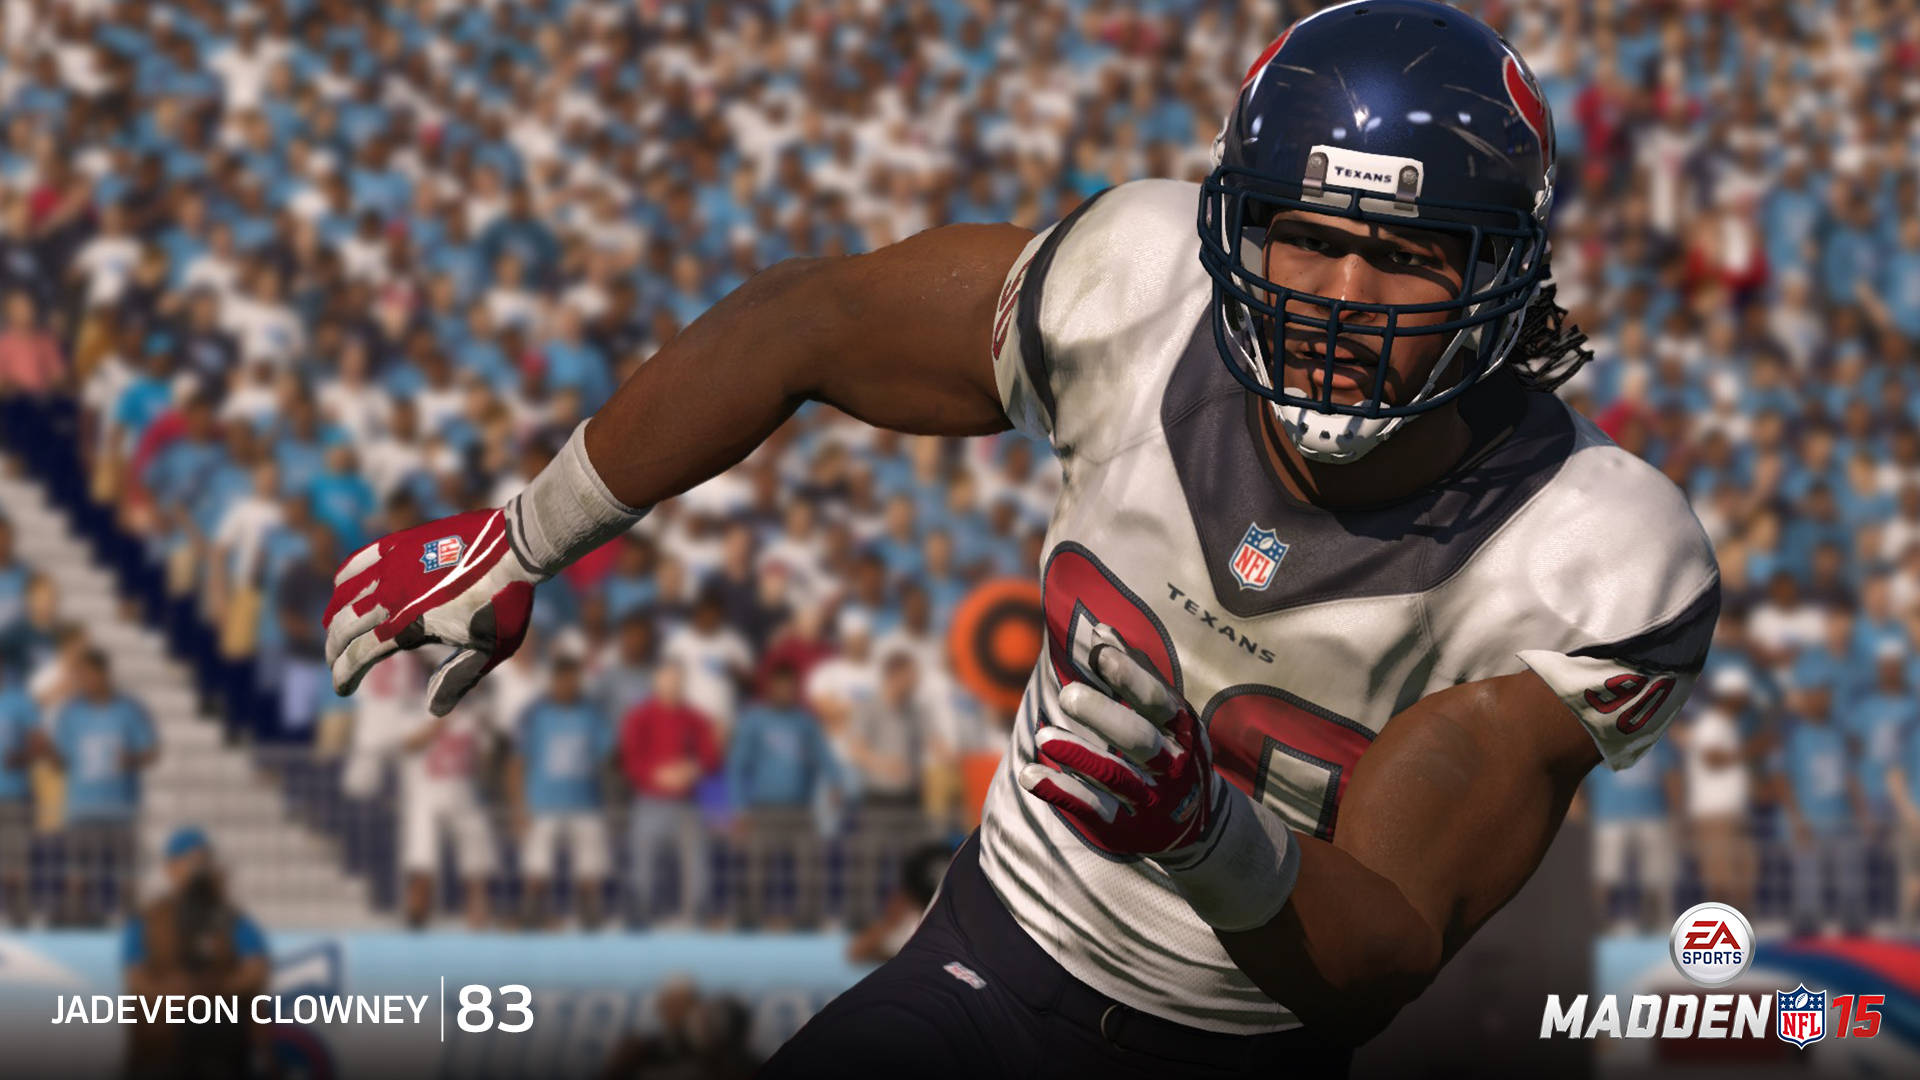 Madden 15 Ratings Jadeveon Clowney Greg Robinson the top rookies